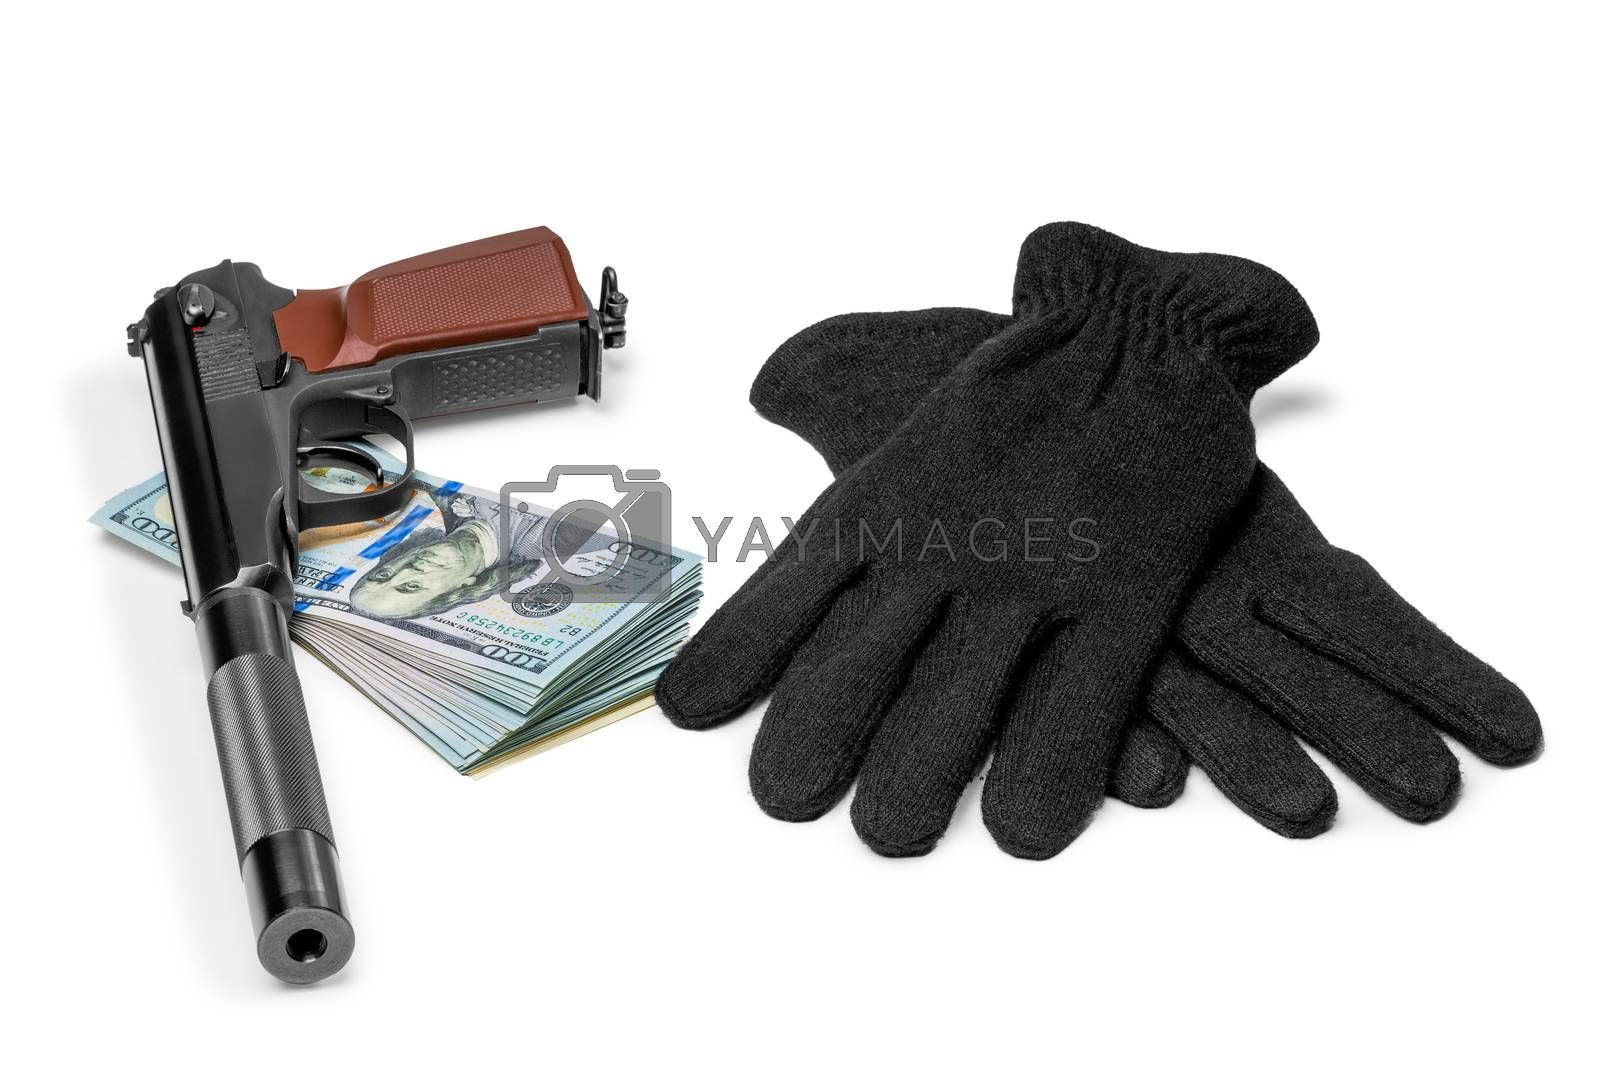 gun with a silencer, money and gloves closeup concept of robbery by Labunskiy K.